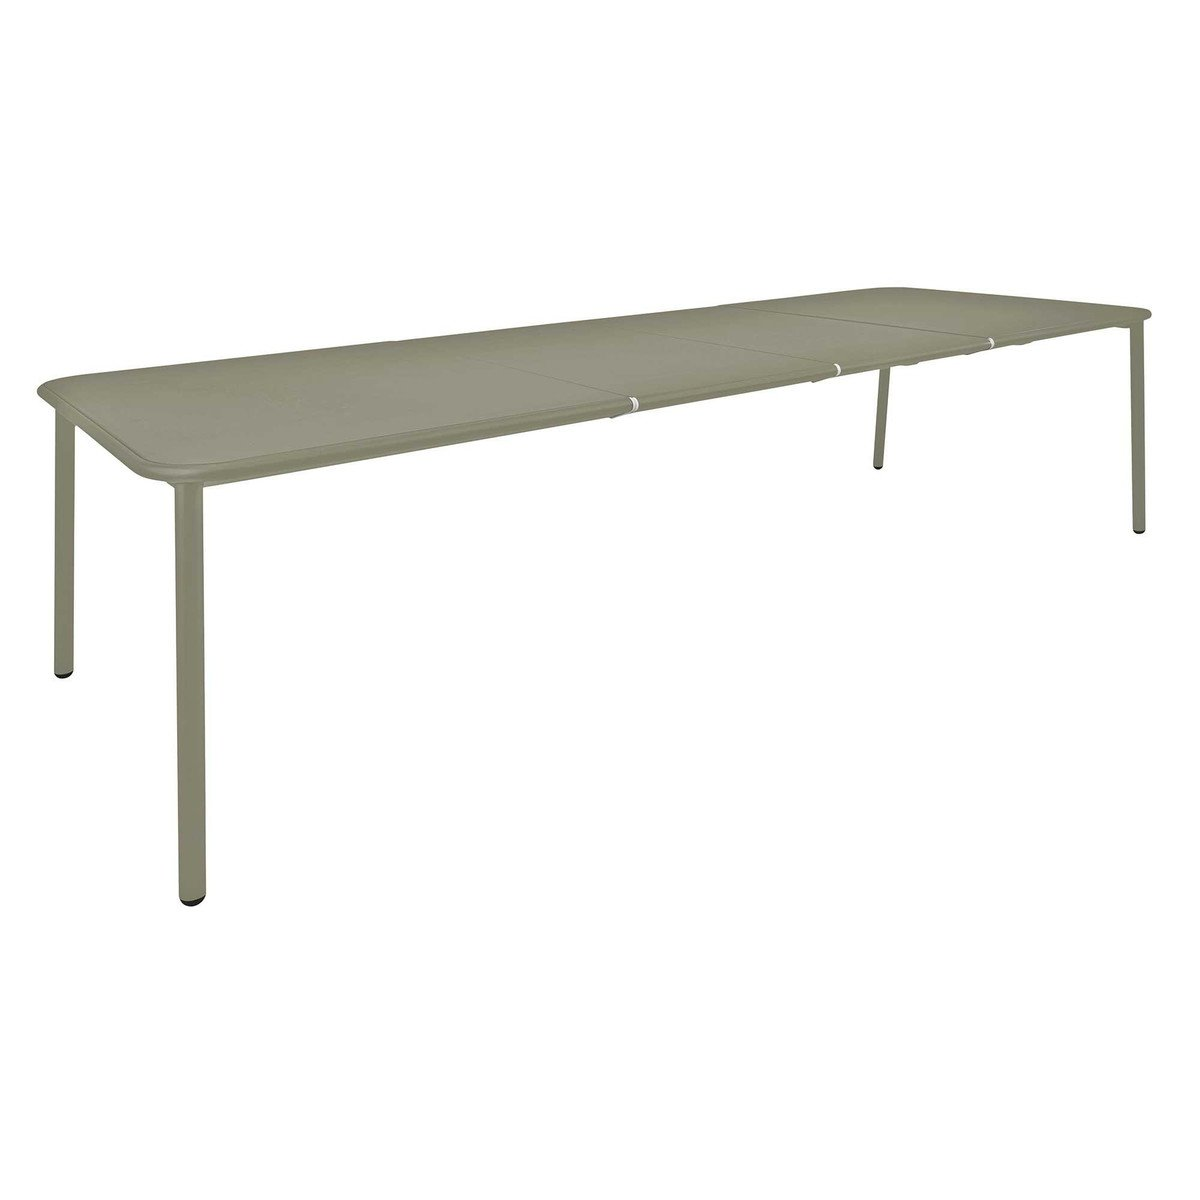 Table Jardin Aluminium Extensible Yard Table De Jardin Extensible De Aluminium Emu